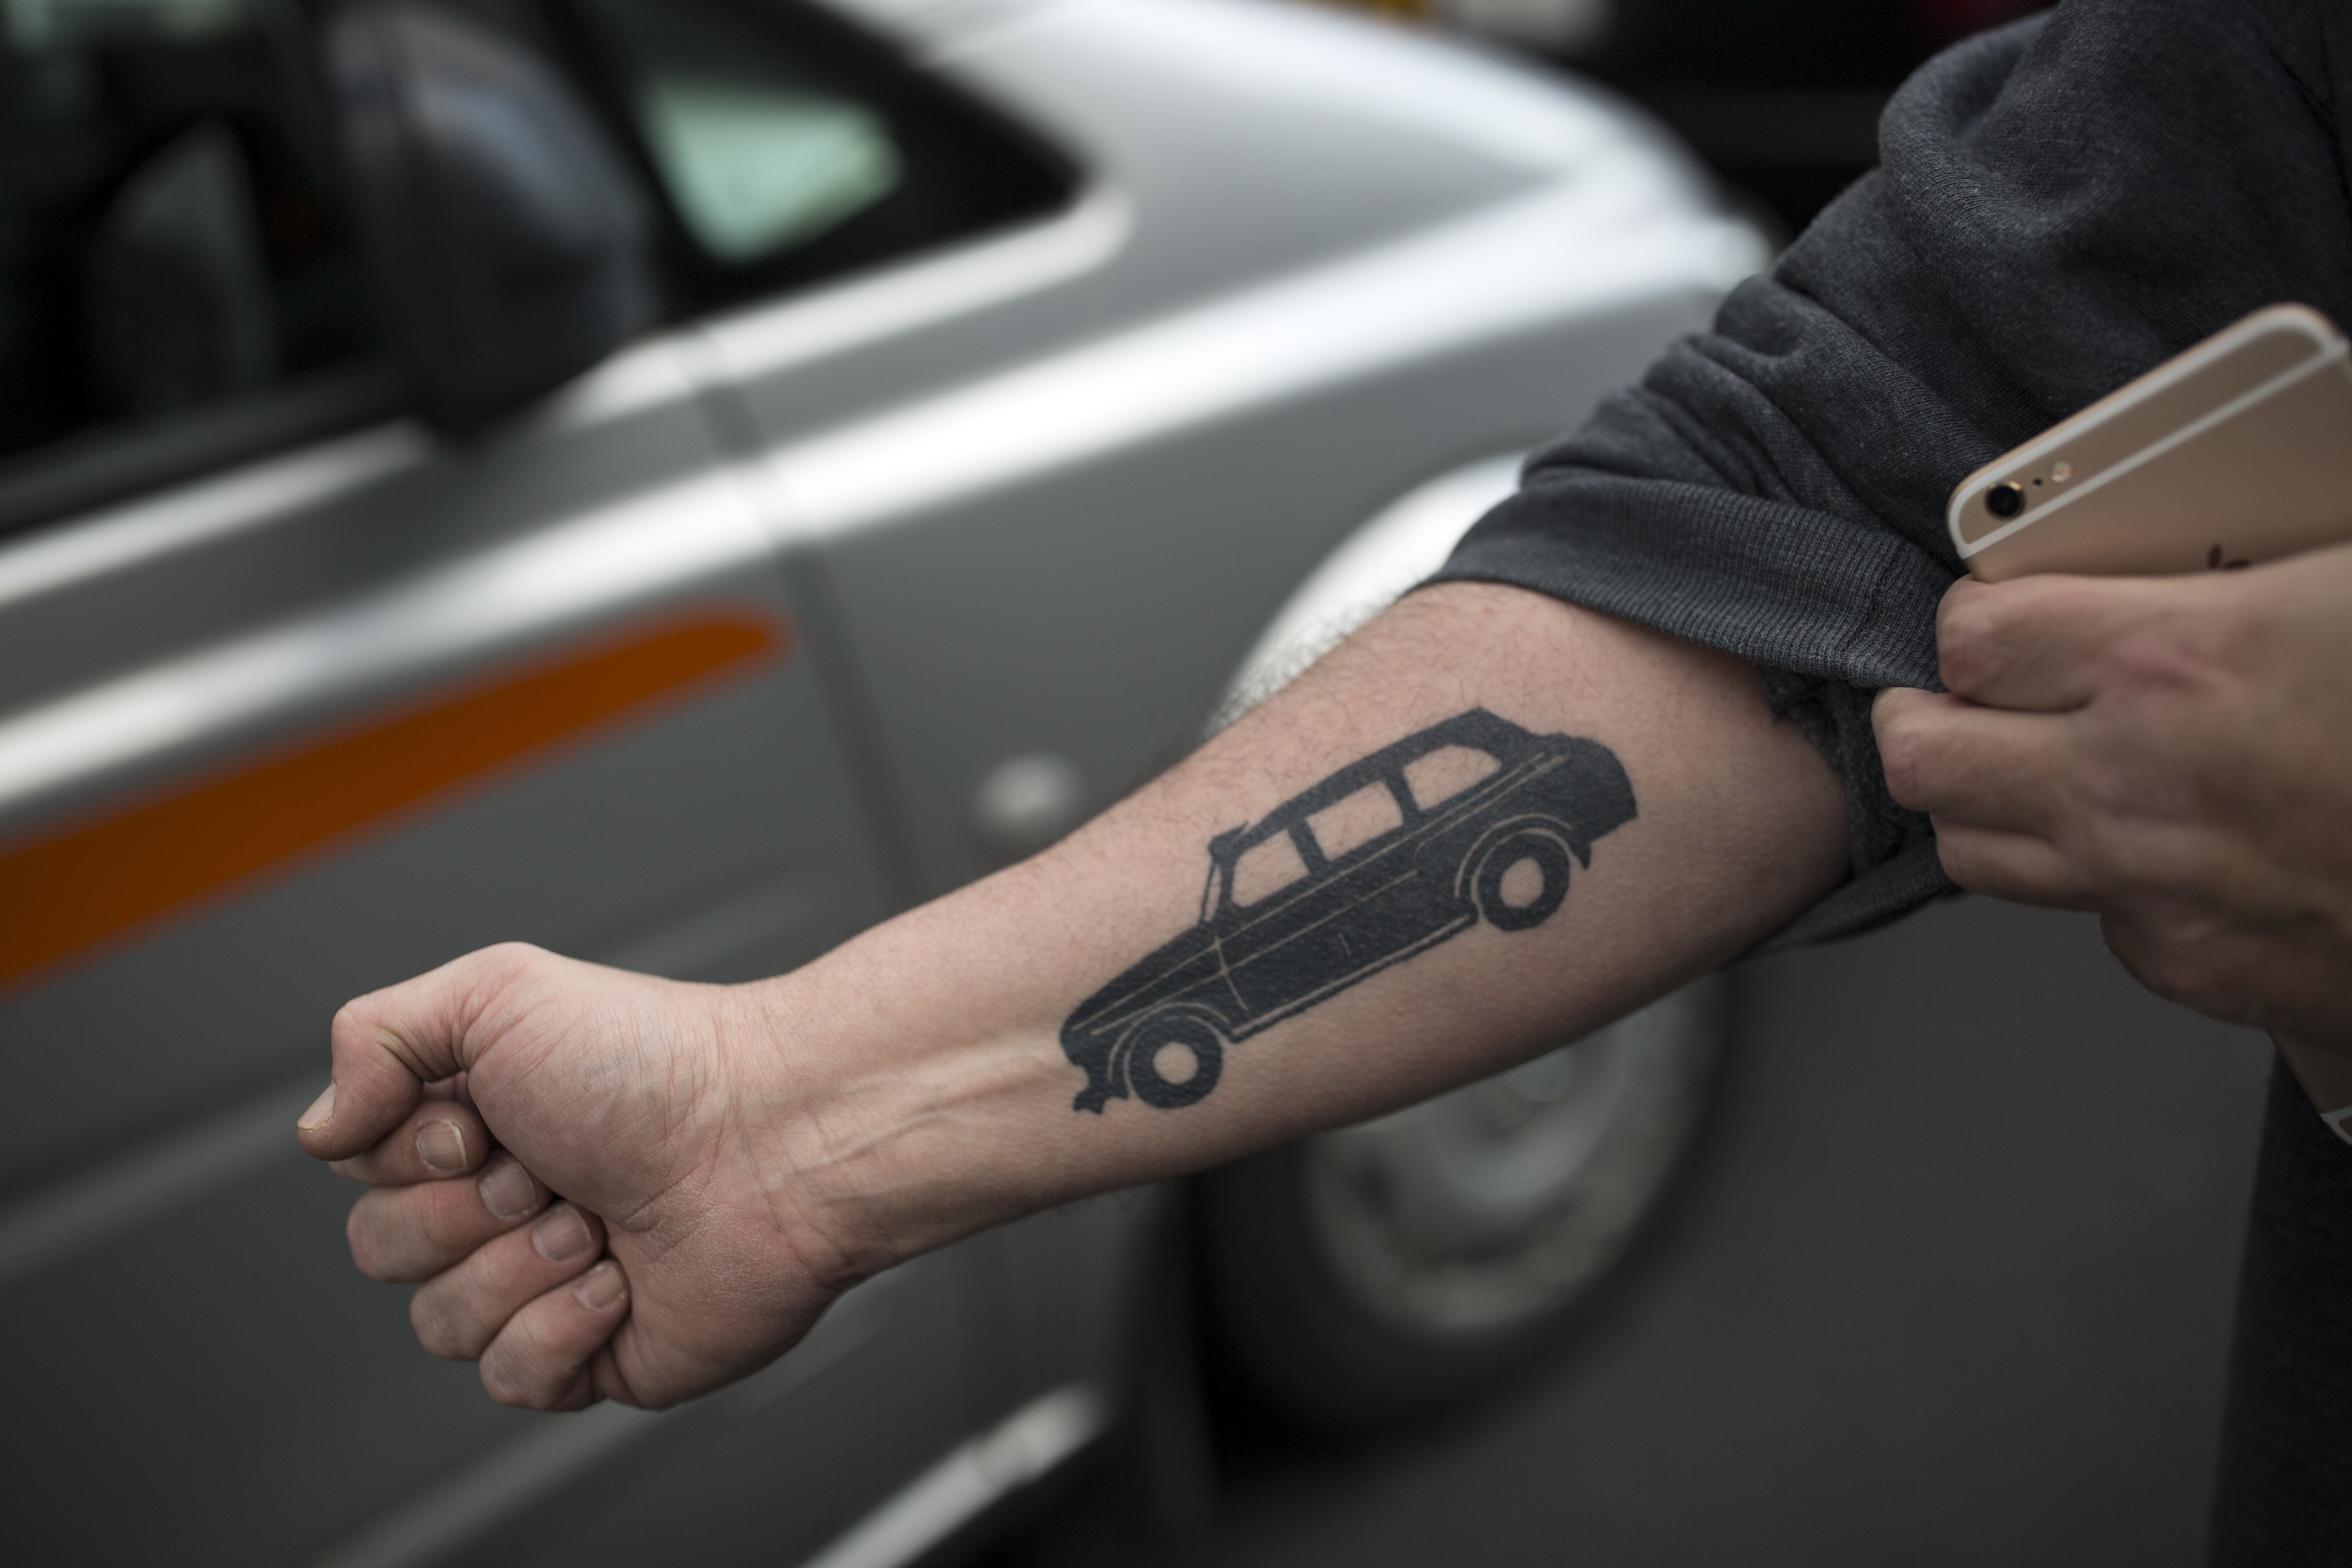 A man shows his tattoo of a London black cab as London taxi drivers stage a protest against Uber's practices on February 10, 2016.